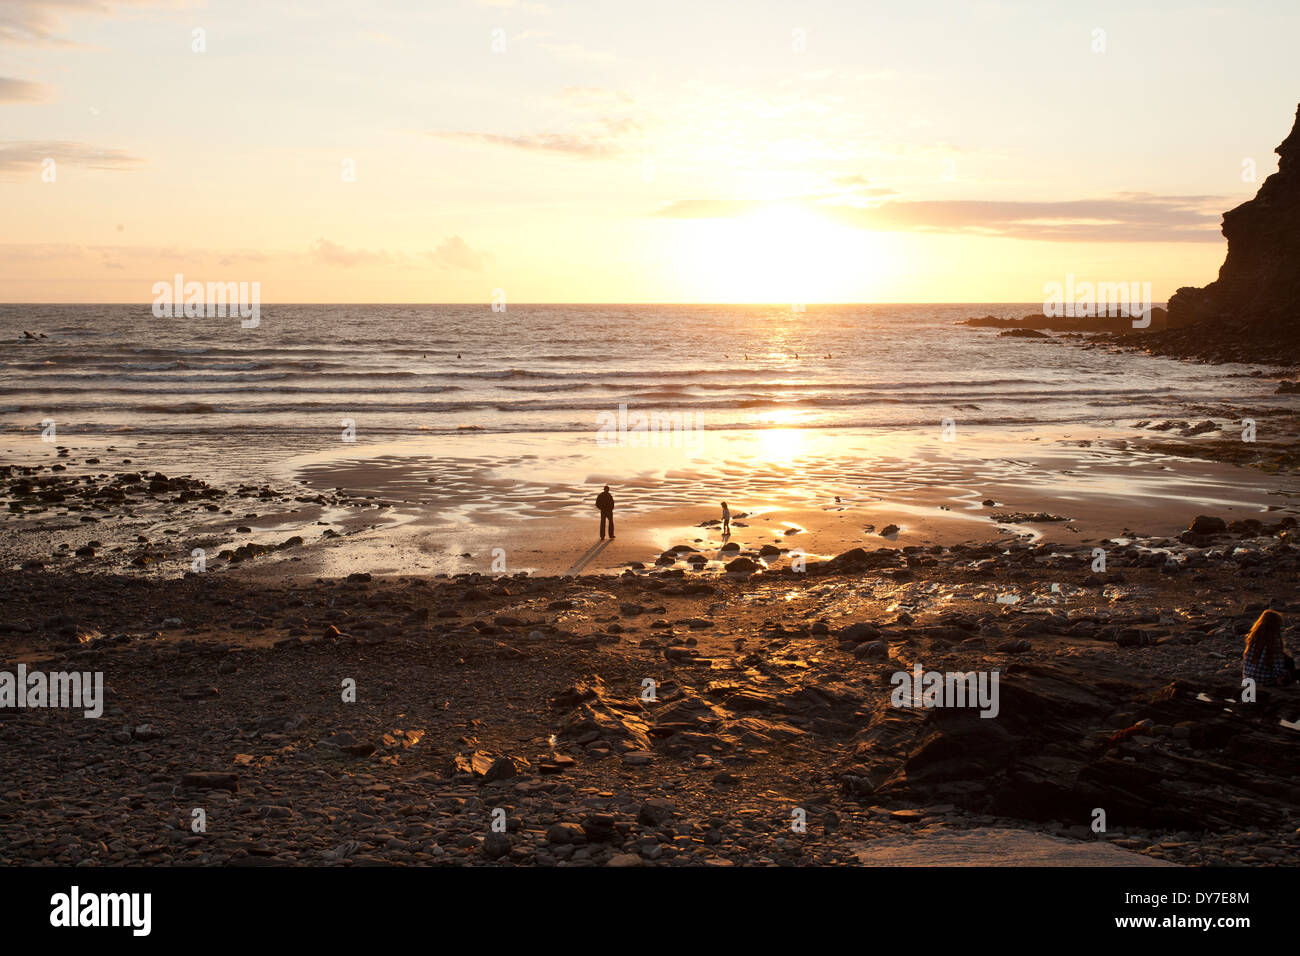 Crackington Haven at Sunset - Stock Image